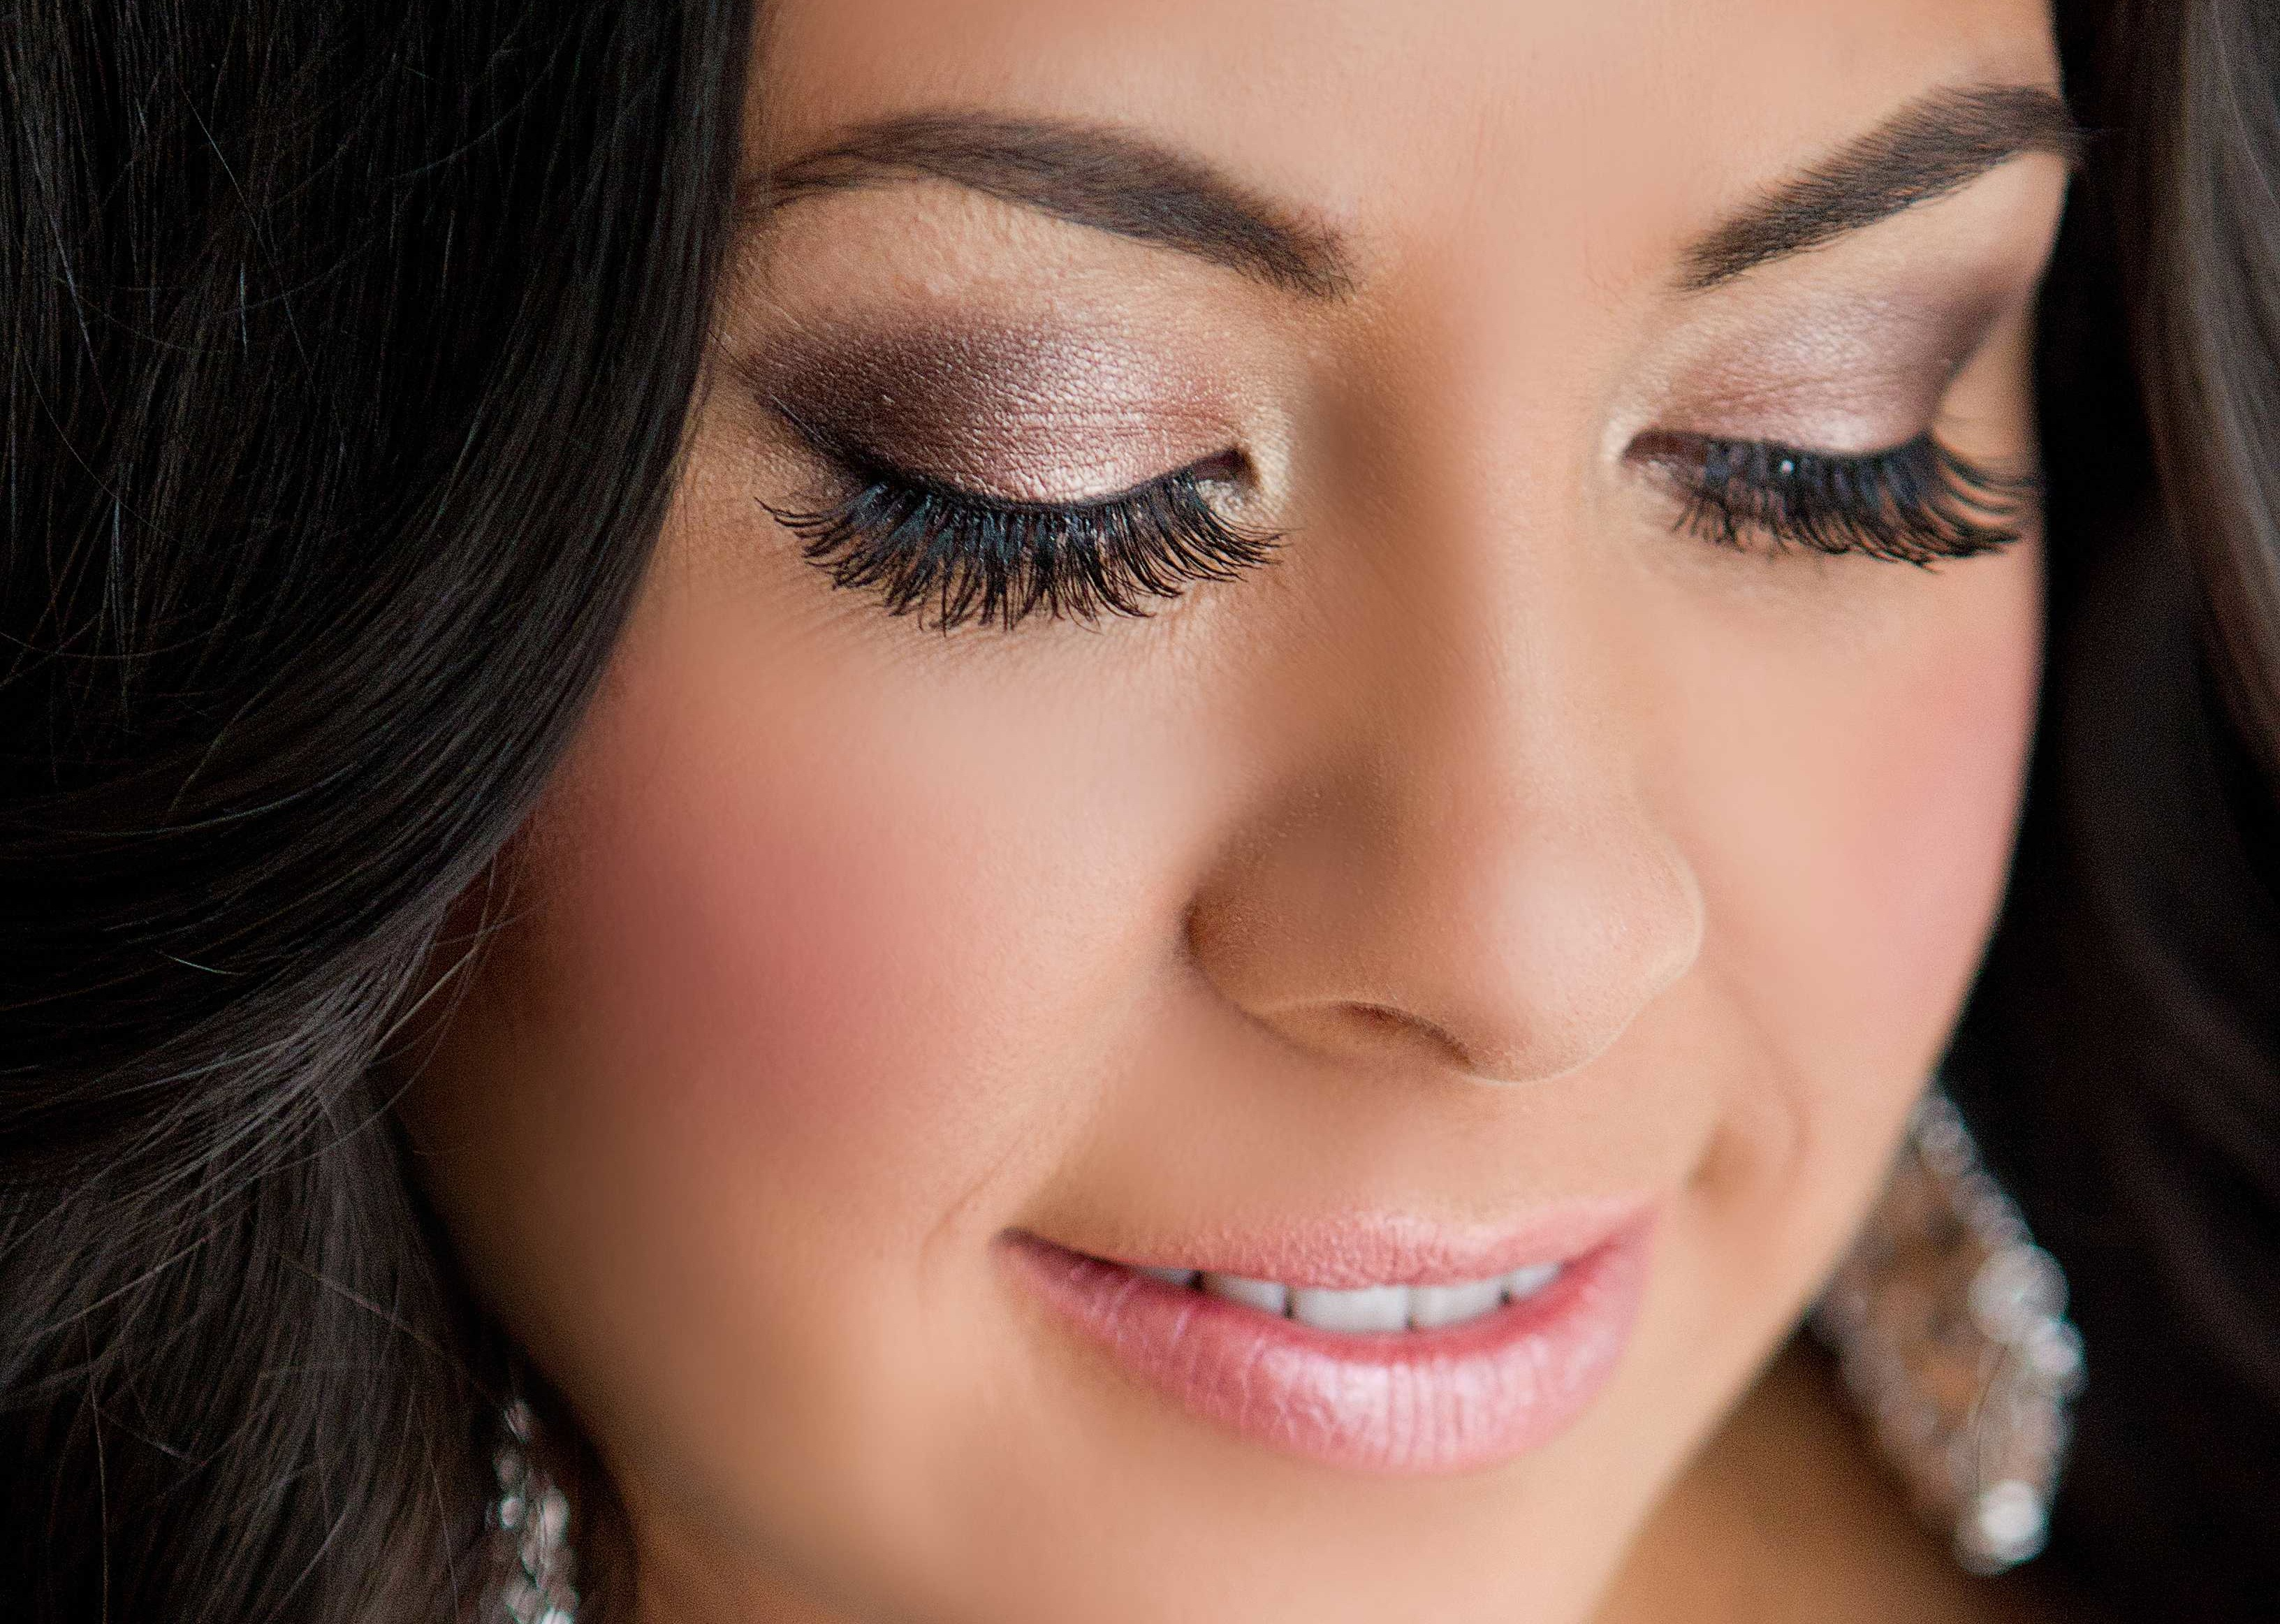 Dramatic Bridal Makeup Brown Eyes : Wedding Makeup Inspiration Dramatic Eyes for the Bride 2 ...